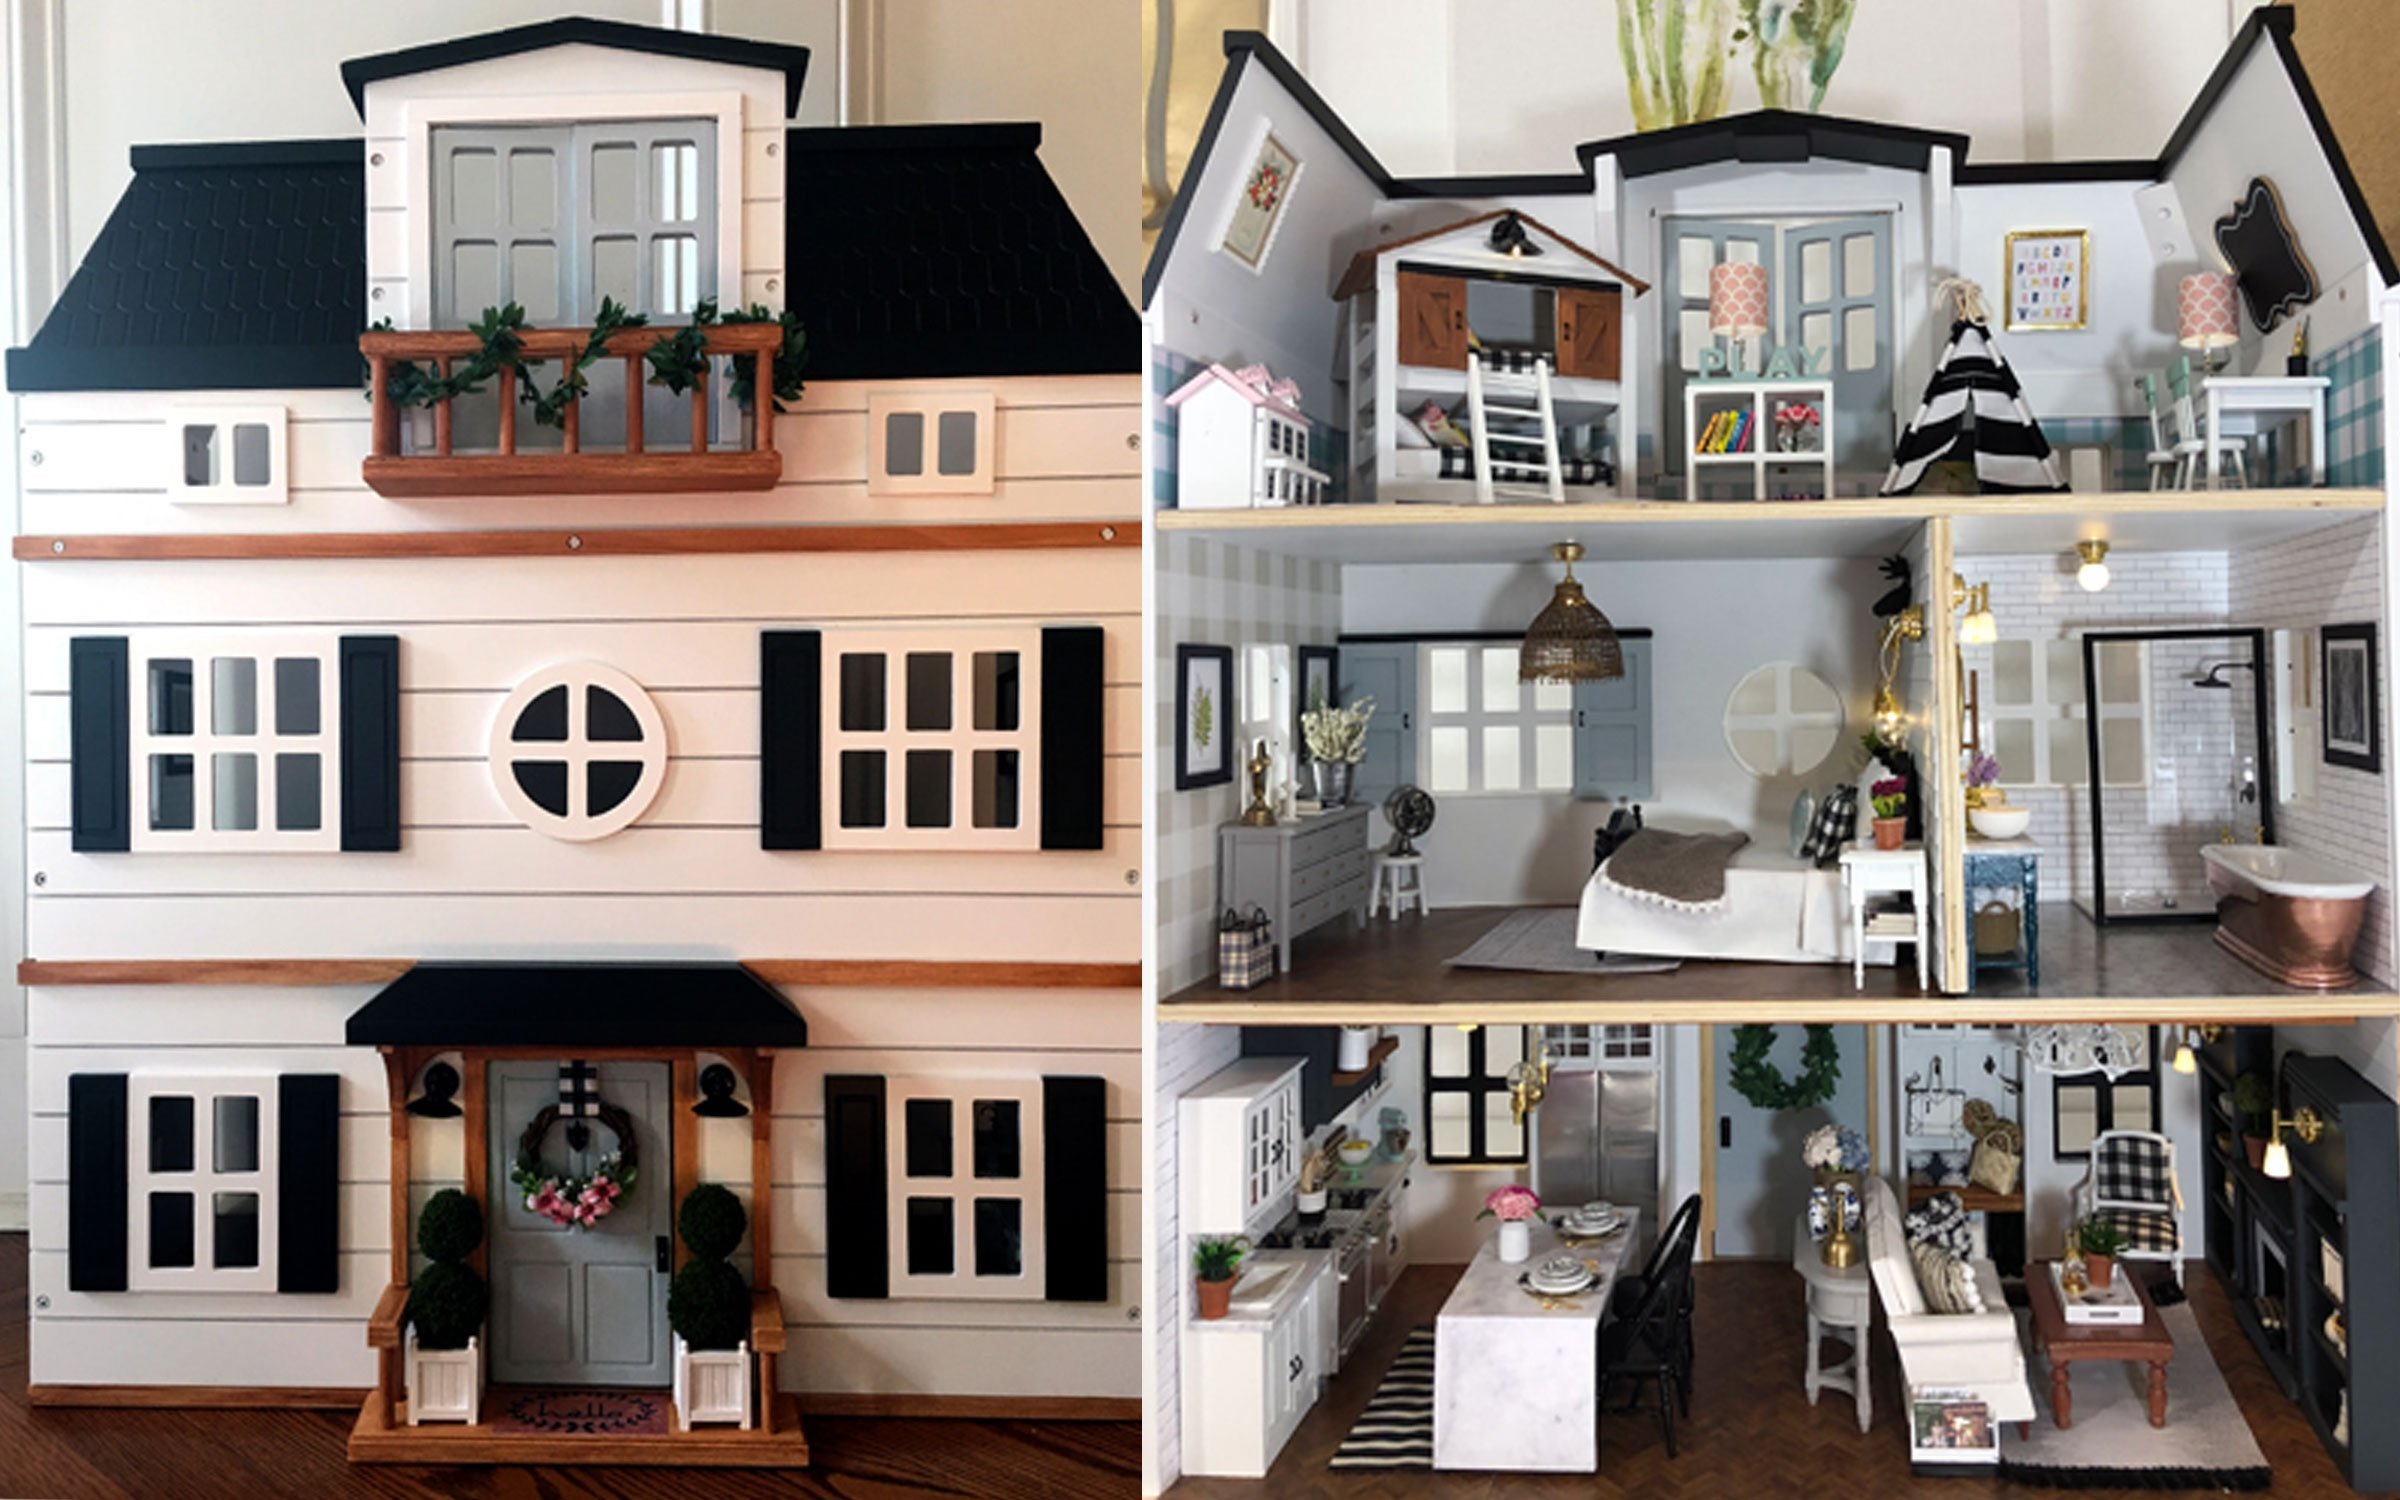 Around Philly Fixer Up Dollhouse Down2earth Interior Design